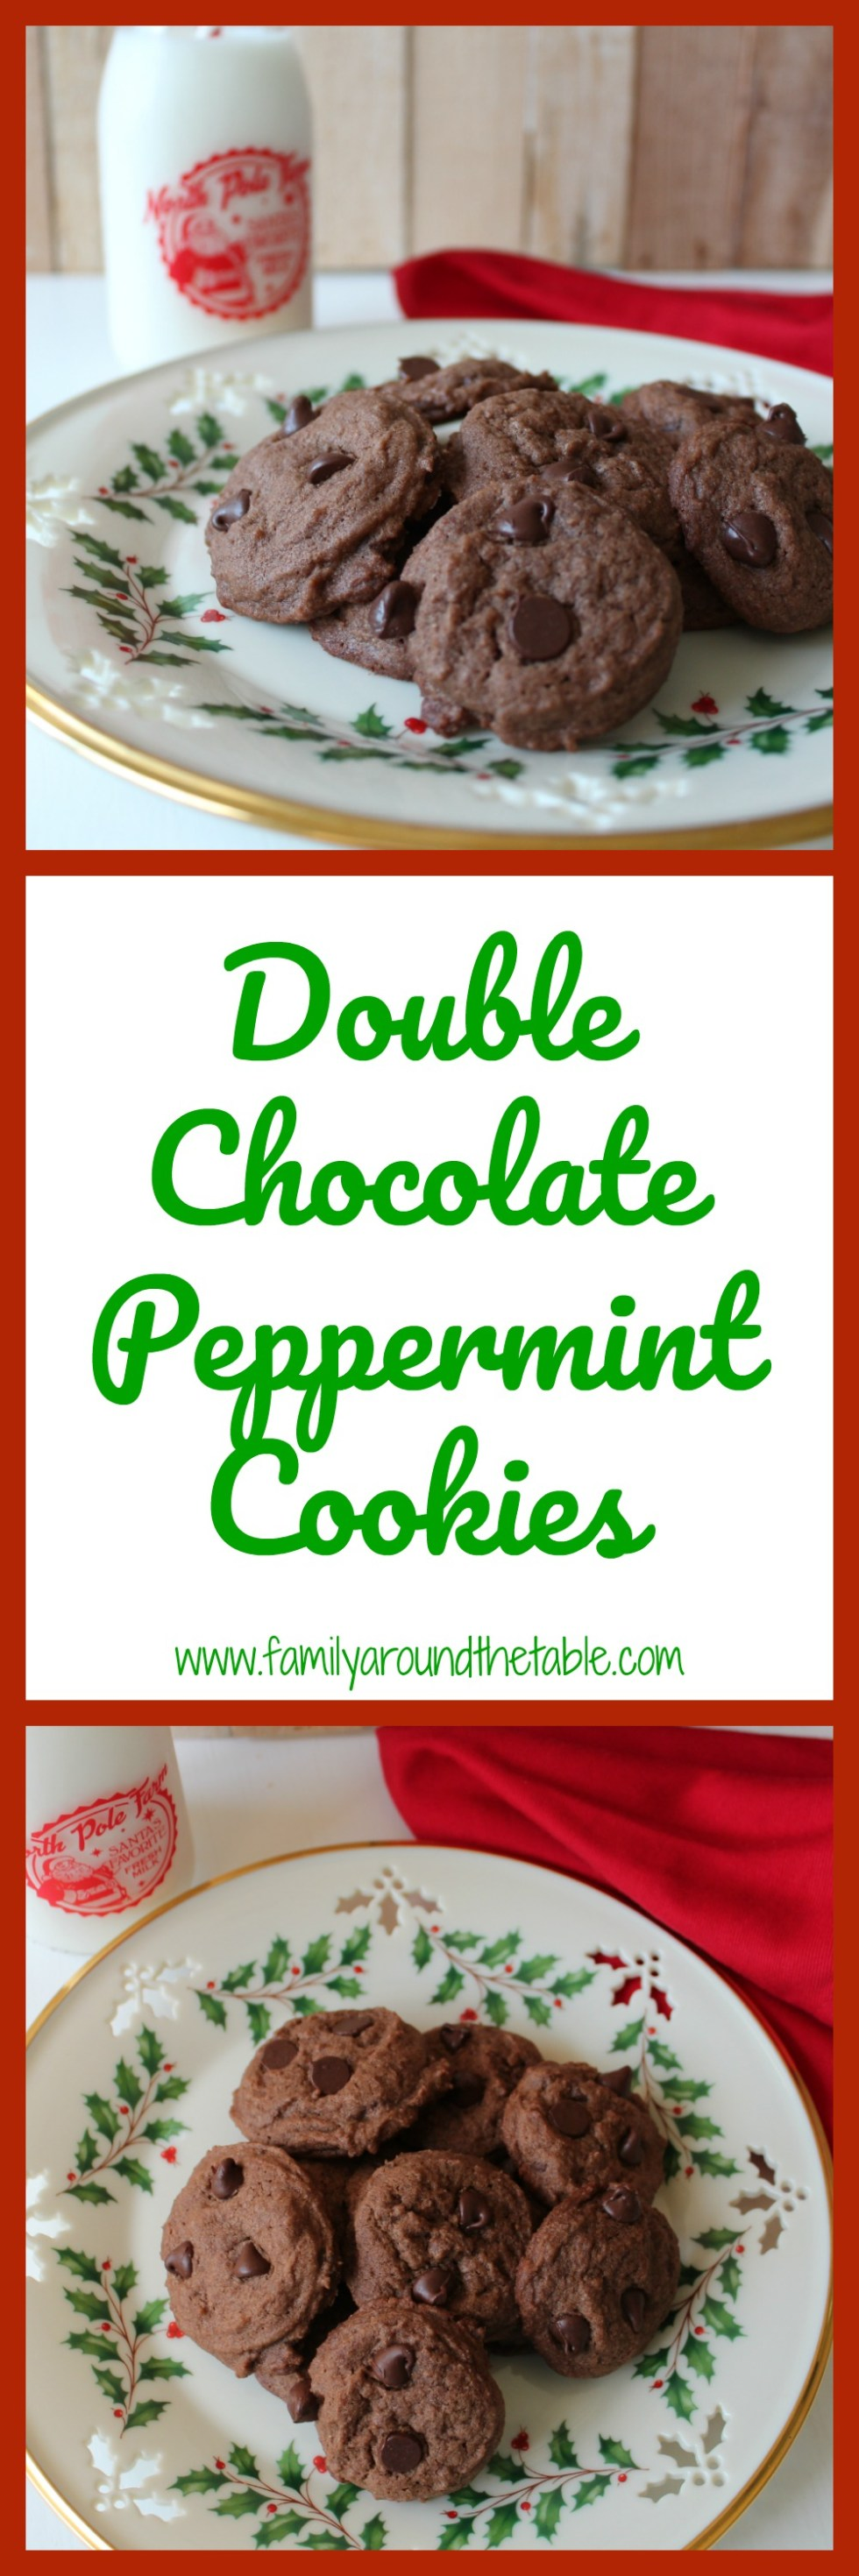 Double chocolate peppermint cookies are the taste of the holidays.